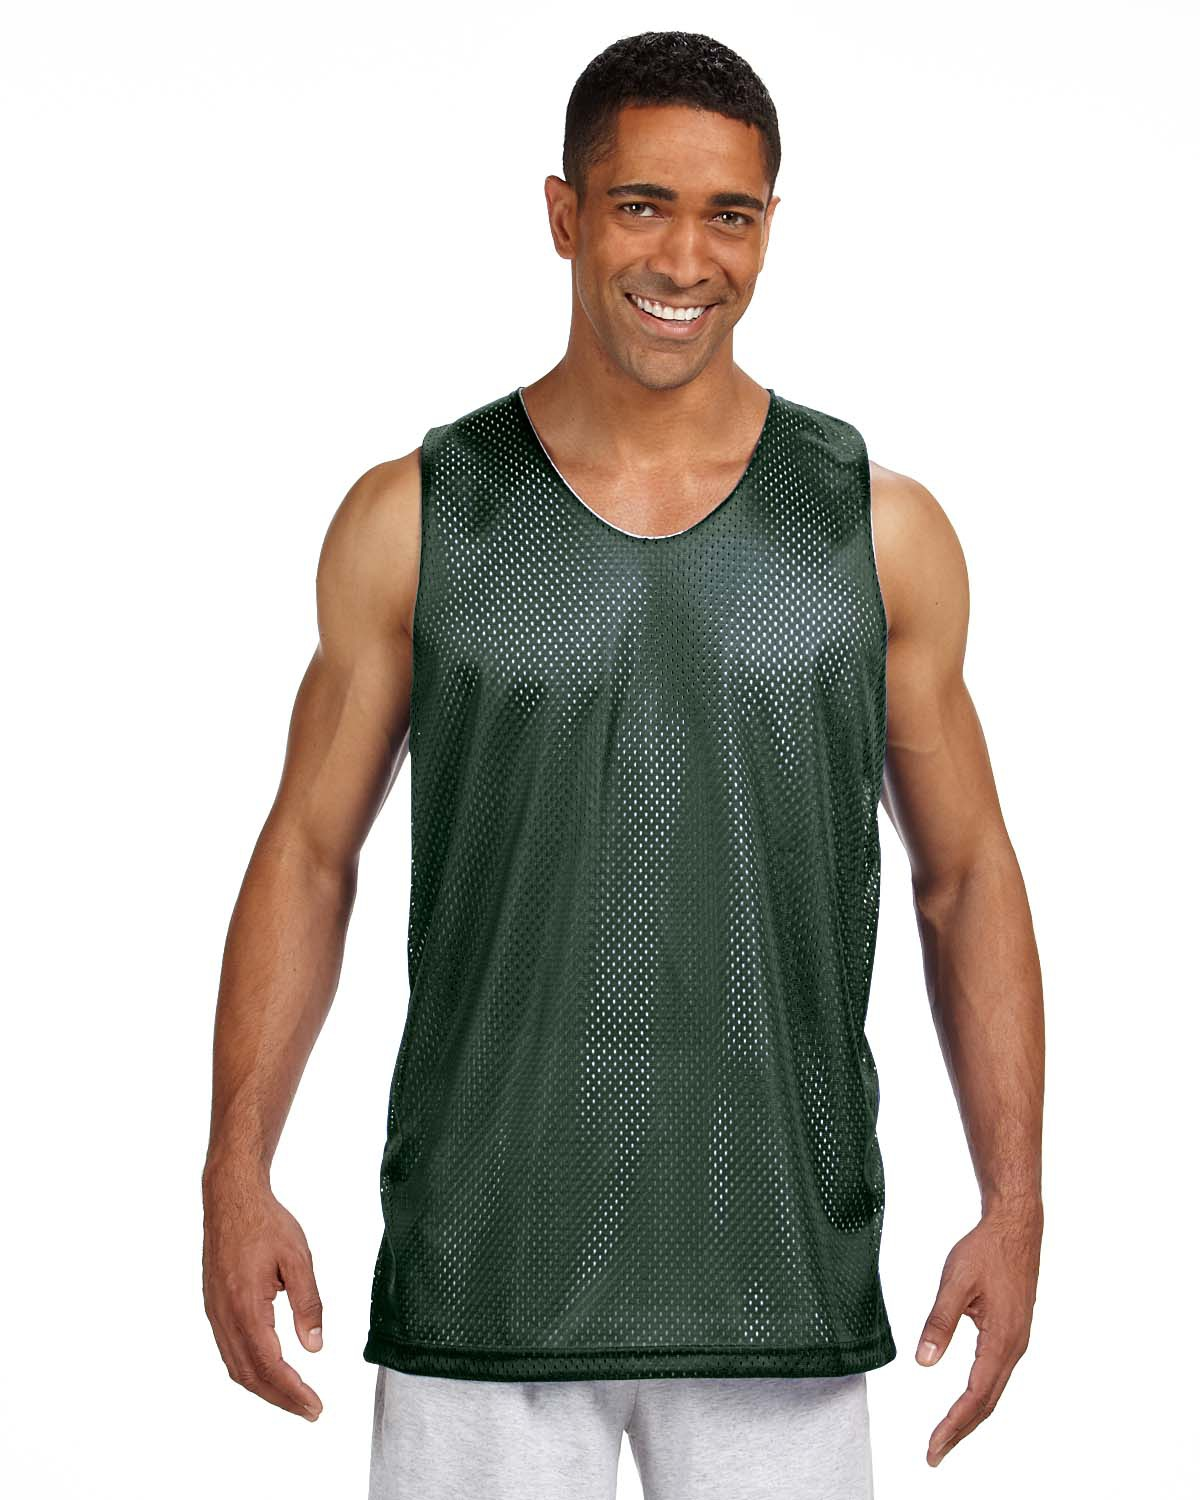 'A4 NF1270 Men's Reversible Polyester Mesh Tank Top'